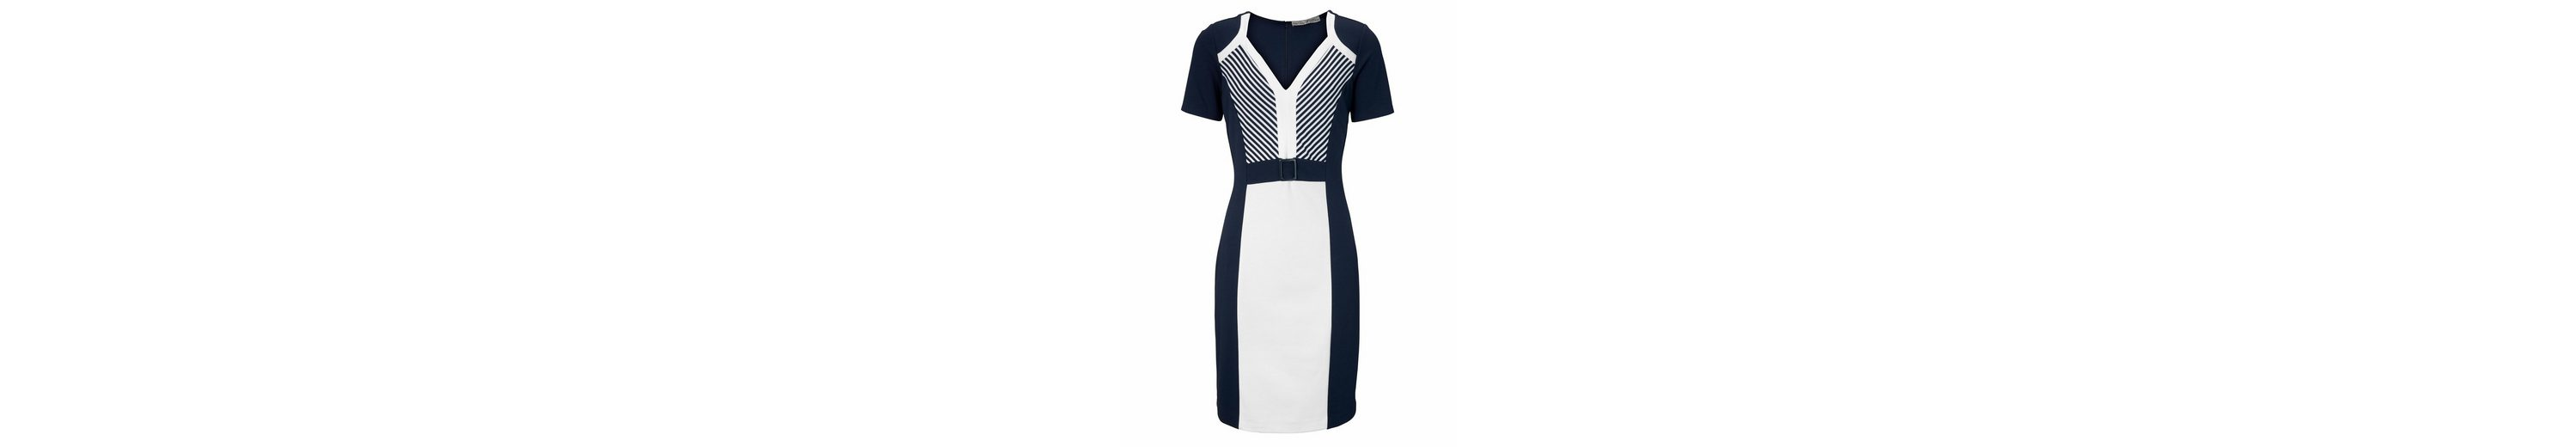 ASHLEY BROOKE by Heine Jerseykleid in Patchoptik Günstig Kaufen Limited Edition B06iiId